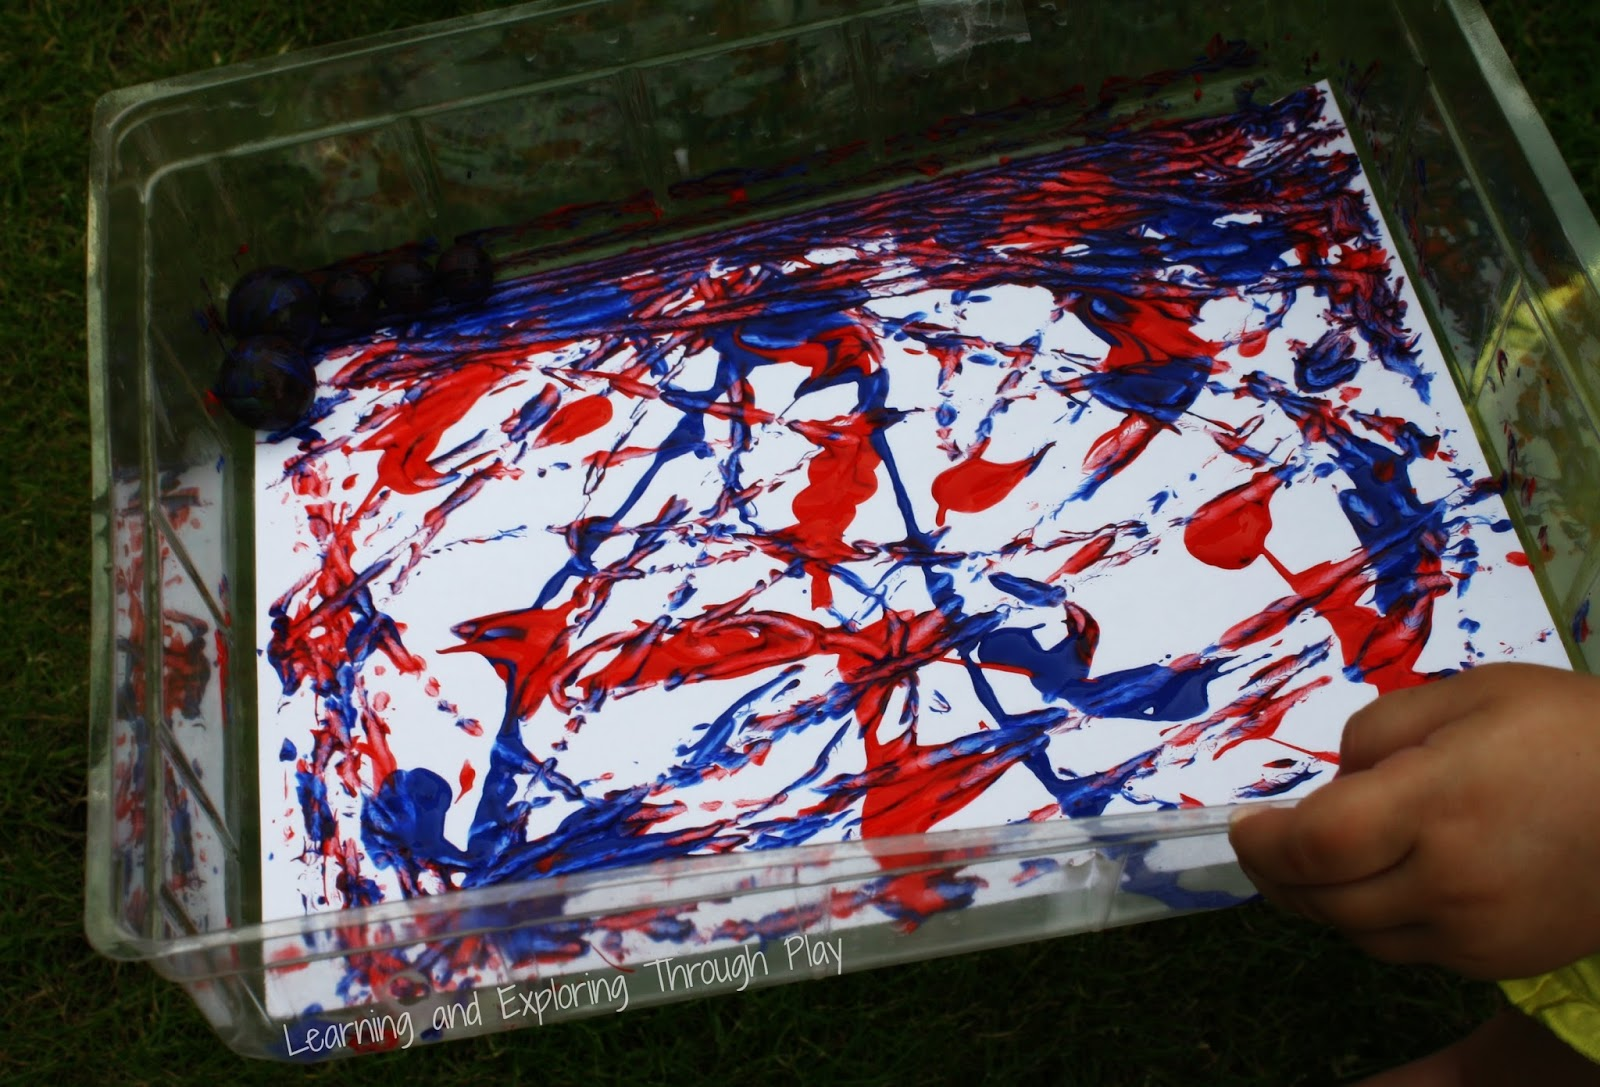 Learning And Exploring Through Play 4th Of July Arts And Crafts For Toddlers And Preschoolers